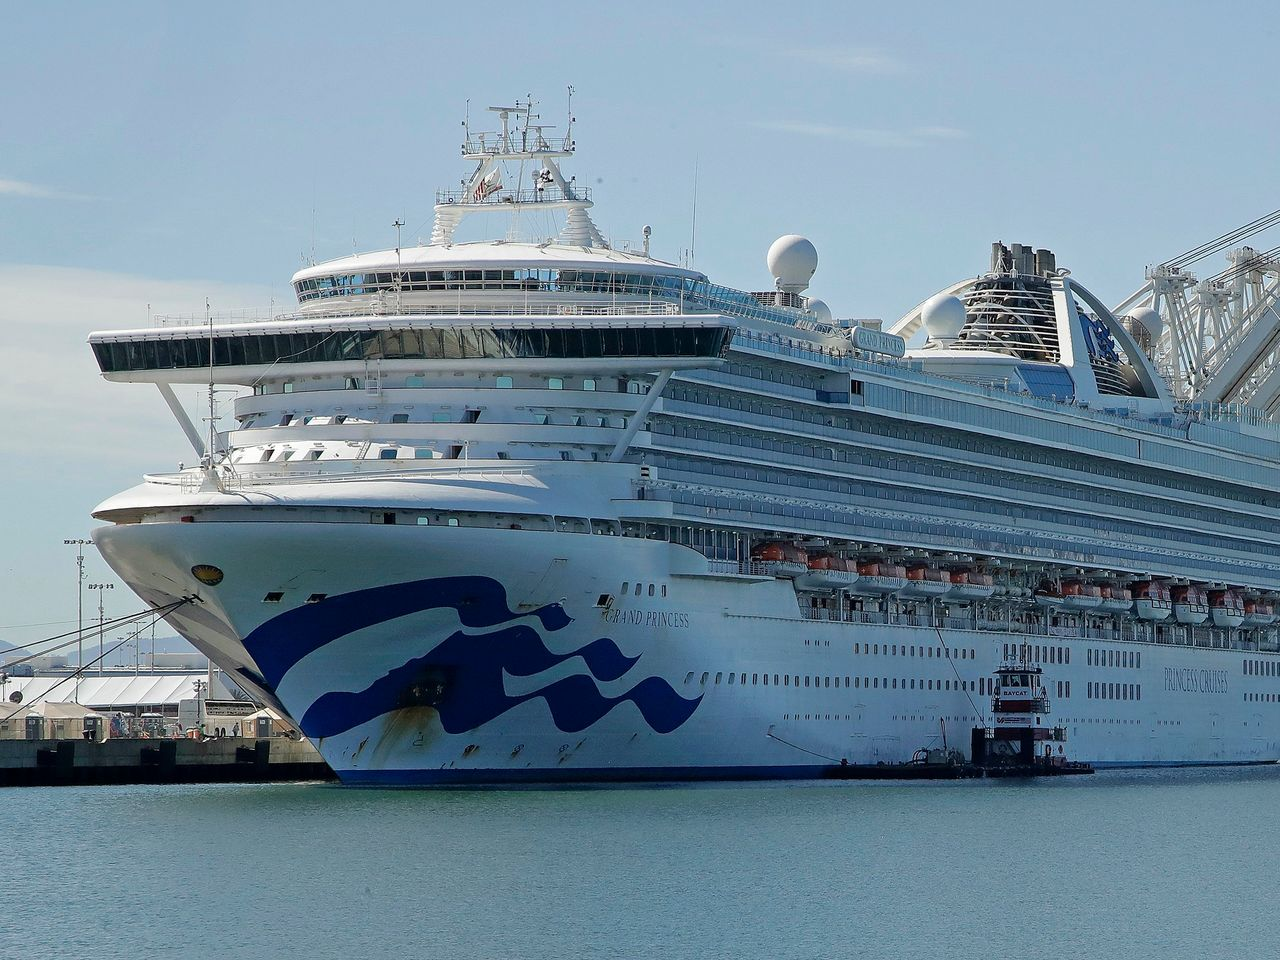 Princess Cruises announces 2022 European cruise program